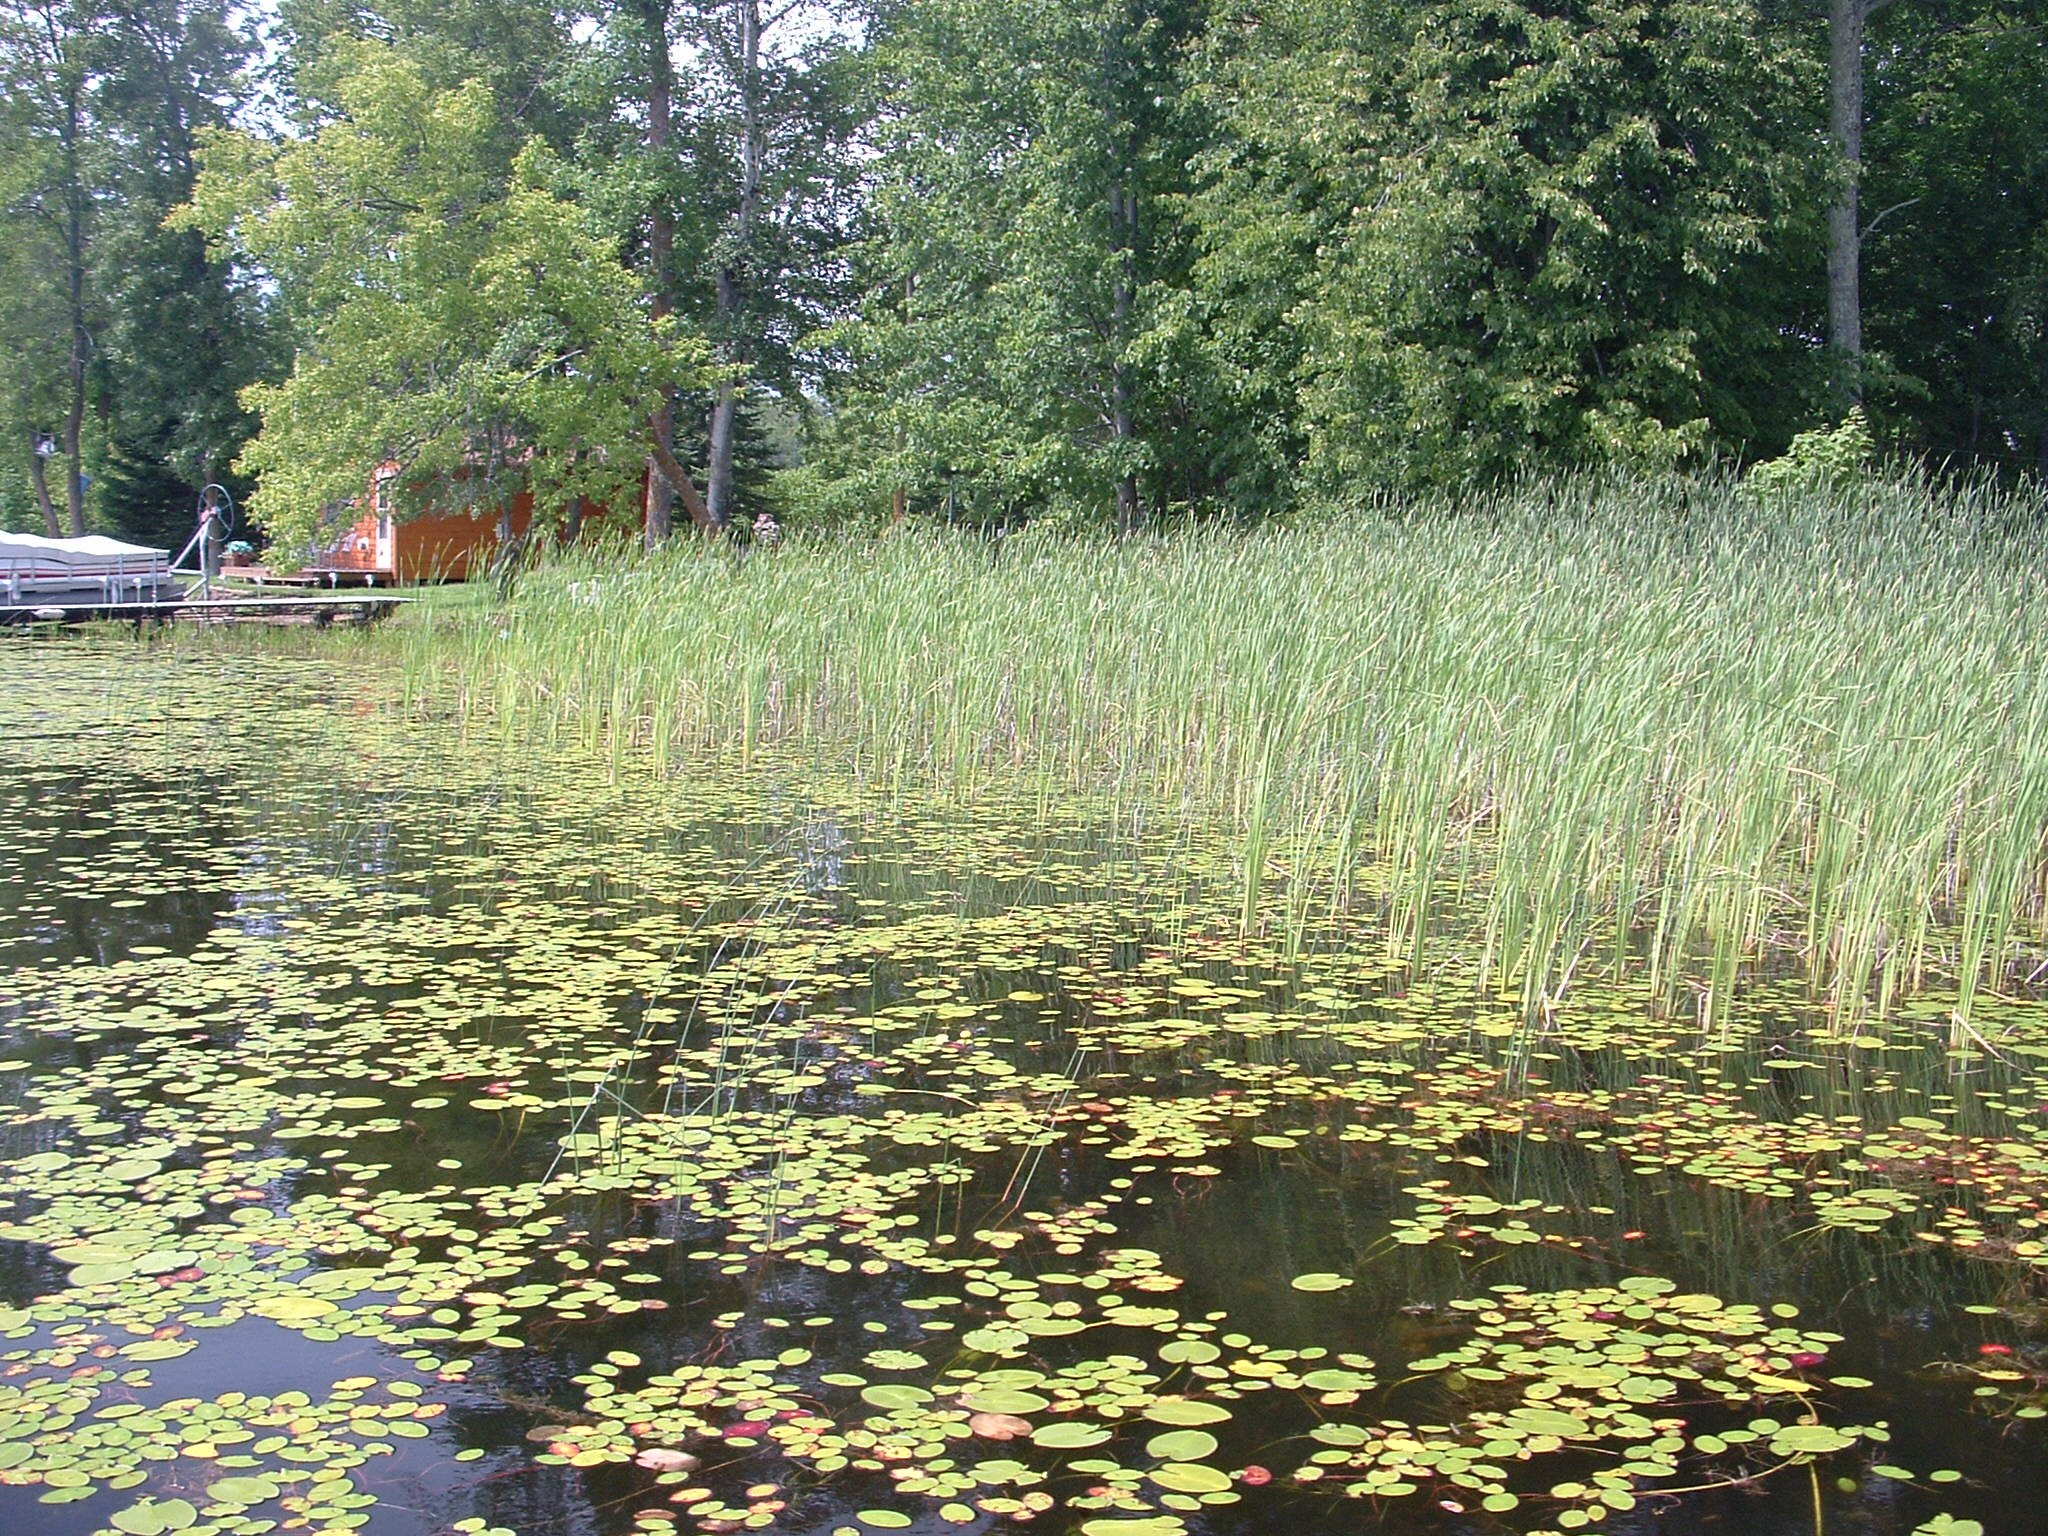 Image showing dense community of lilies and bulrush along a shoreline with a dock and boathouse in background.